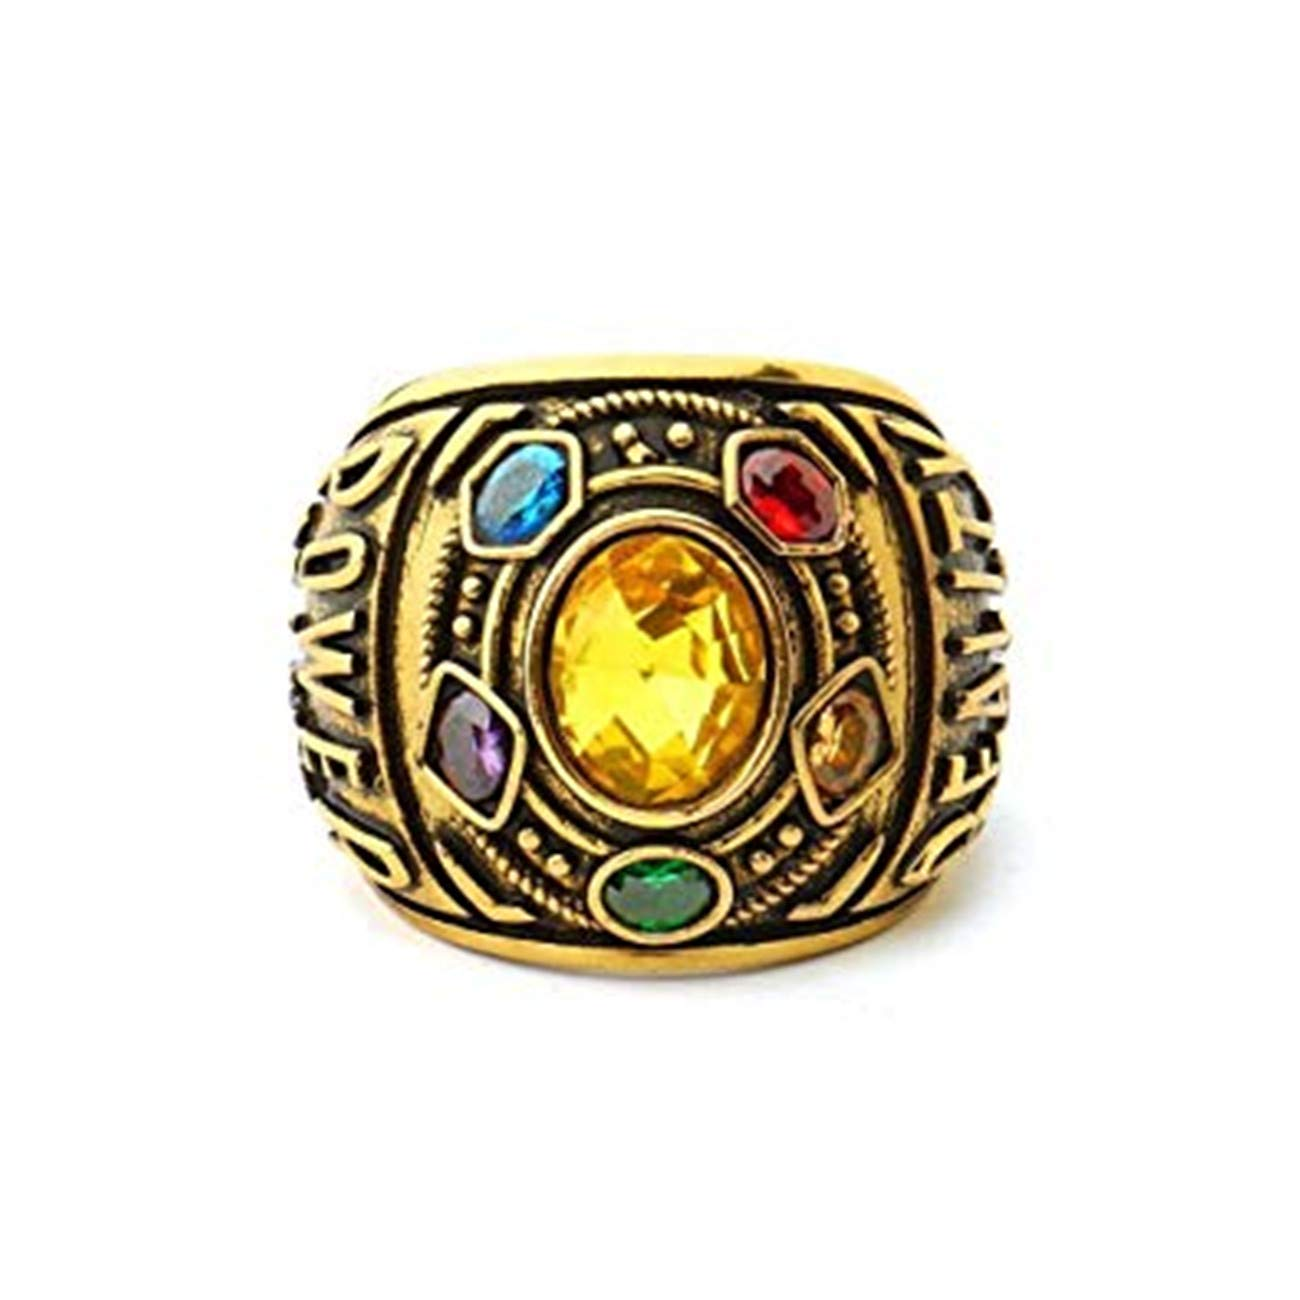 Excow Jewelry Thanos Rings Infinity War Soul Stone Power Ring Gold Ring Cosplay Costume Prop